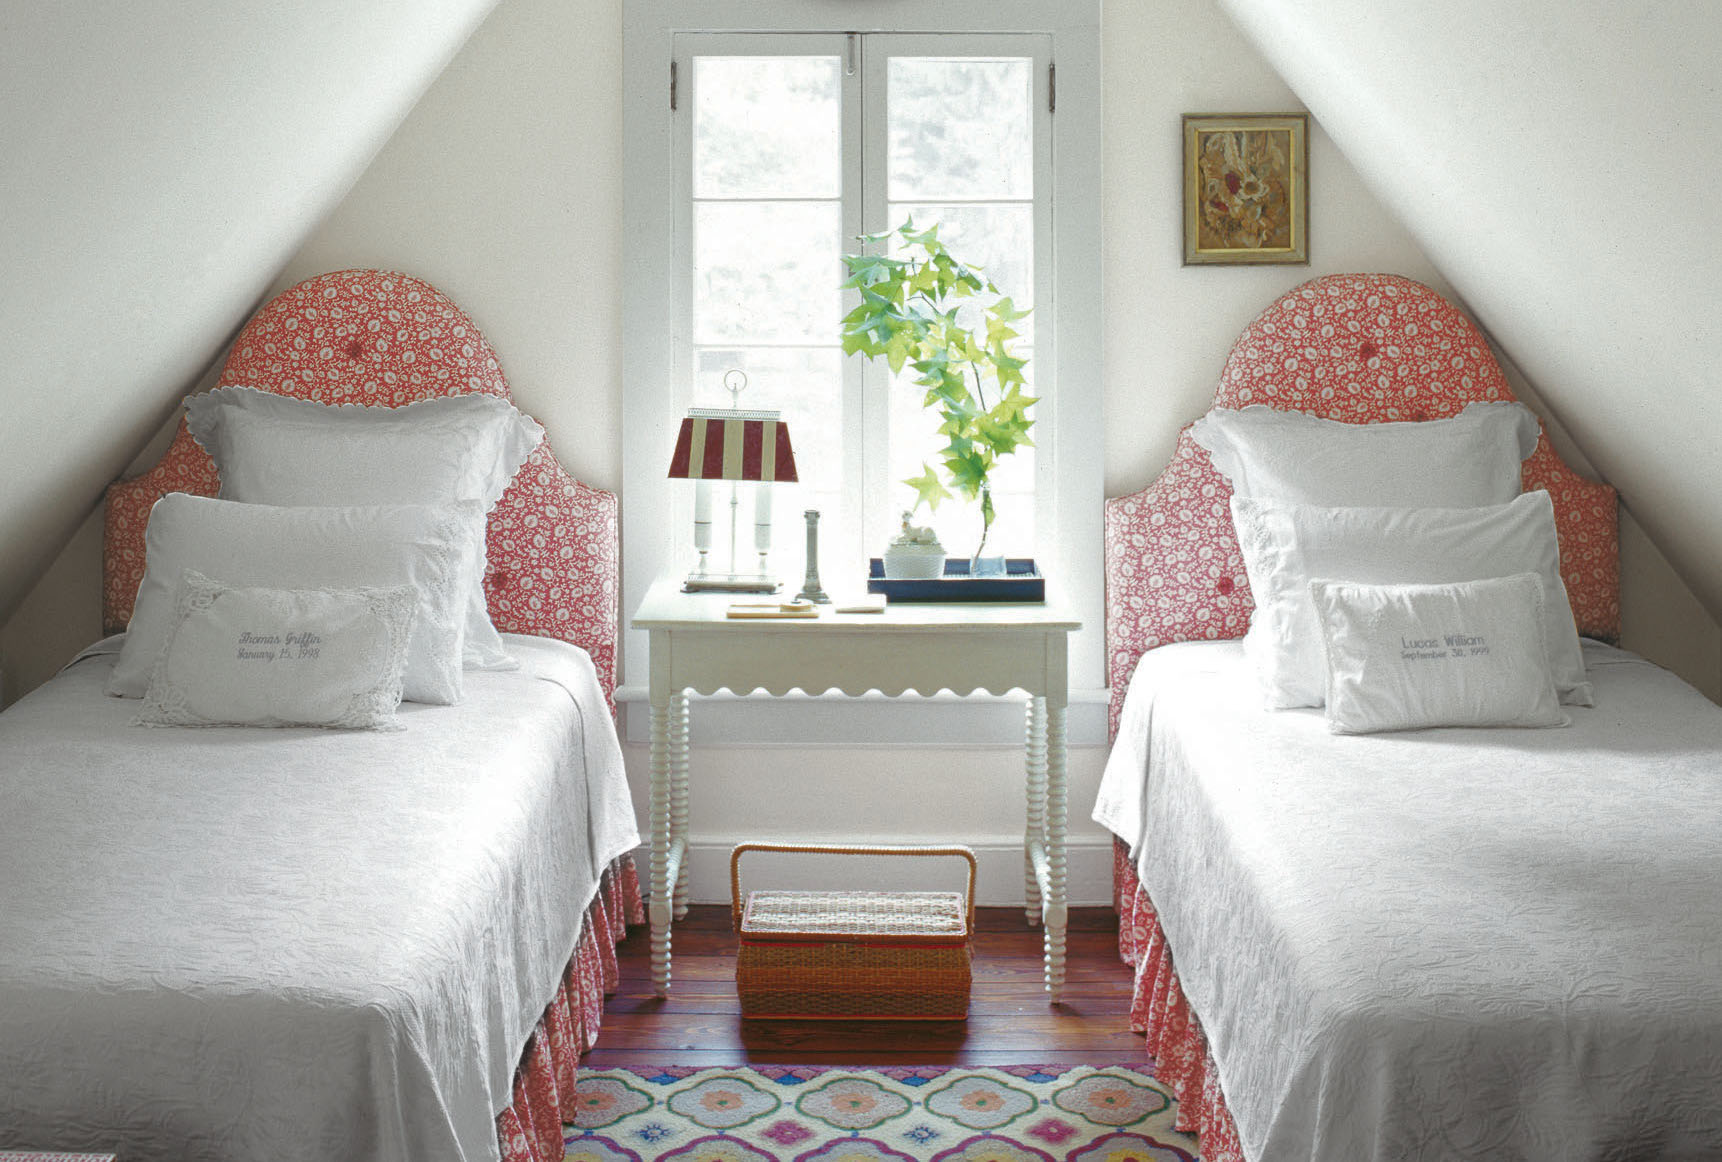 bedroom designs for small rooms 31 small bedroom design ideas -decorating tips for small bedrooms FONROAM